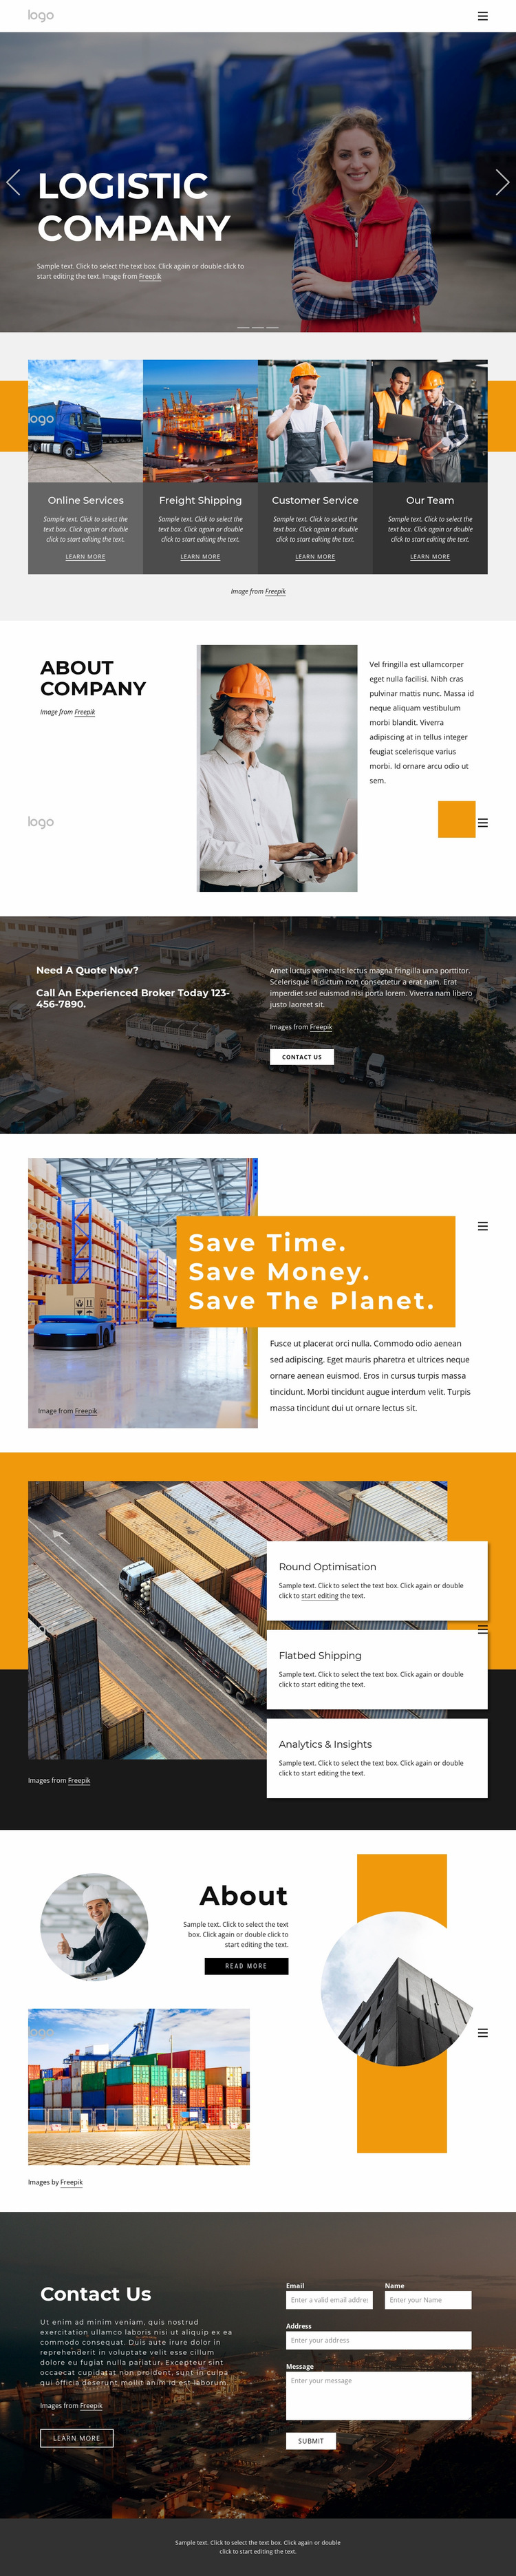 Shipping services and logistics Website Builder Templates